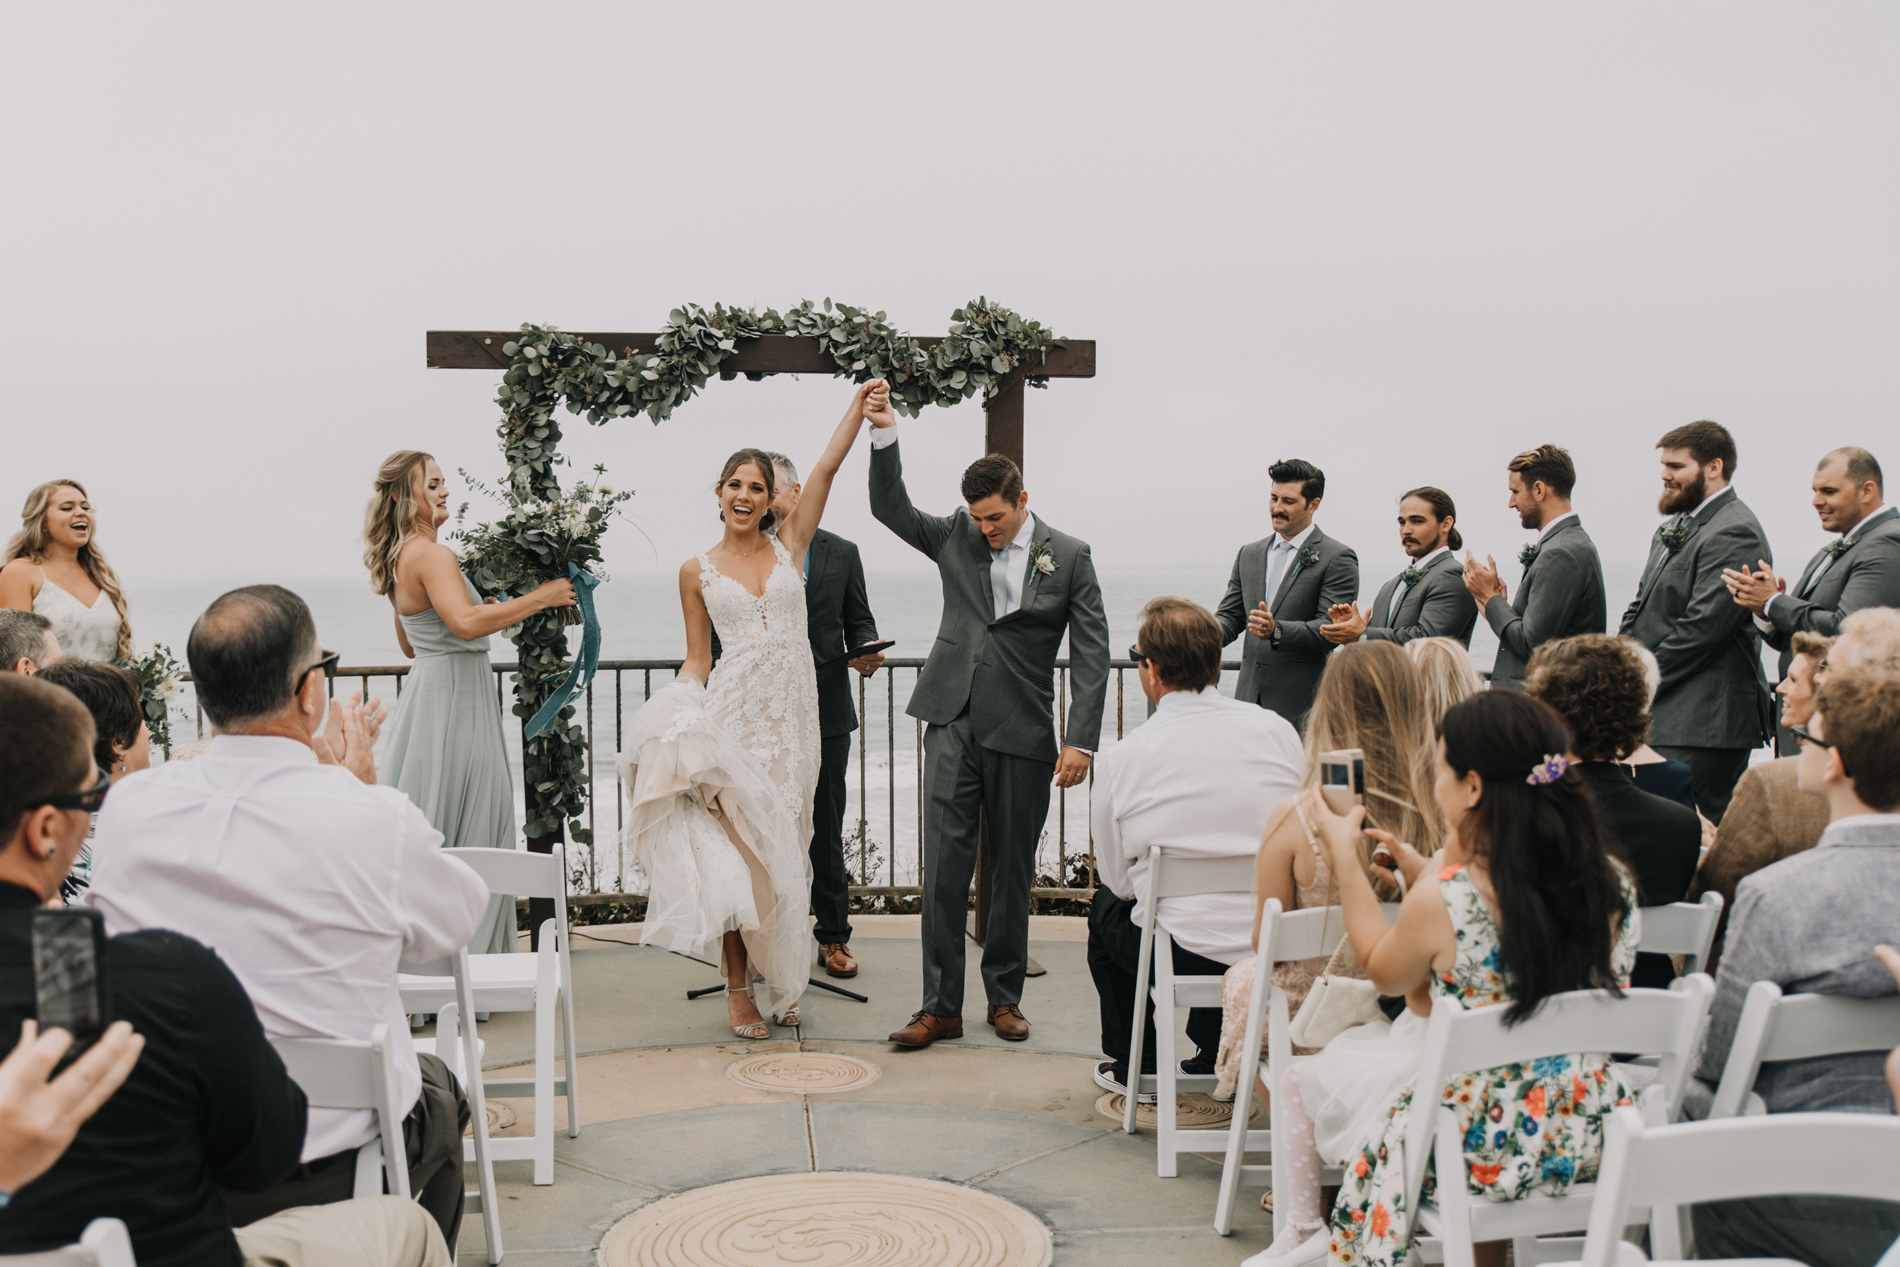 SanDiegobeachweddingphotographer.jpg